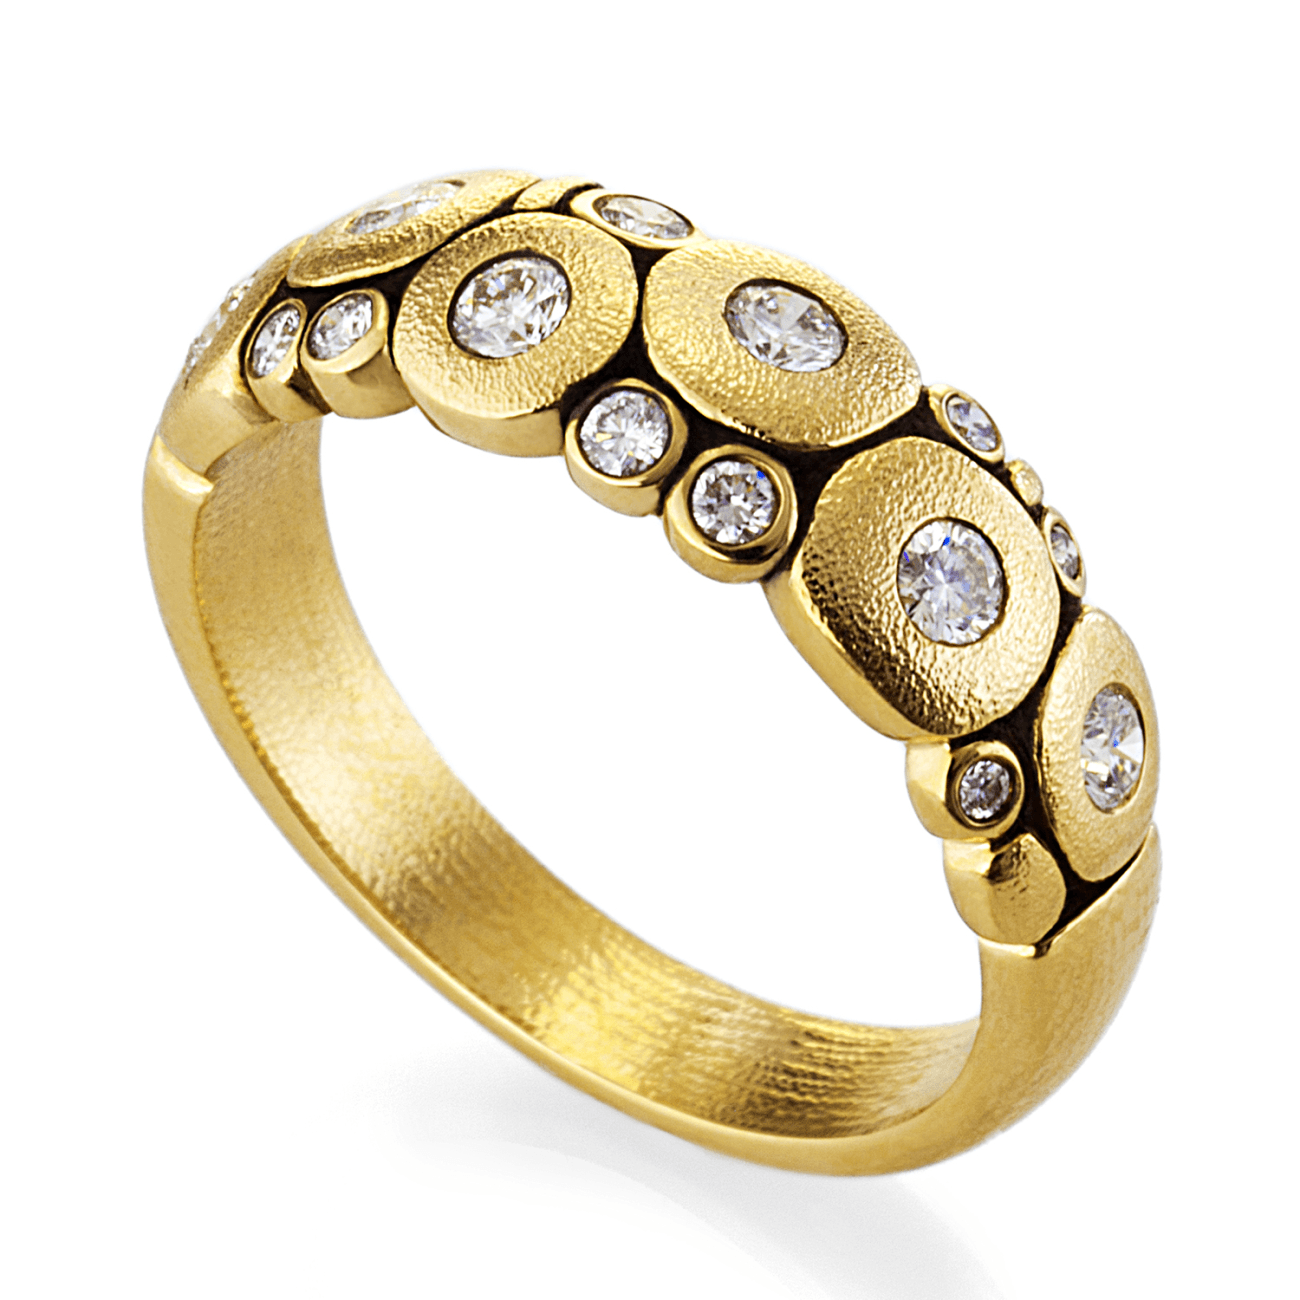 Alex Sepkus Jewelry - R122D | Manfredi Jewels